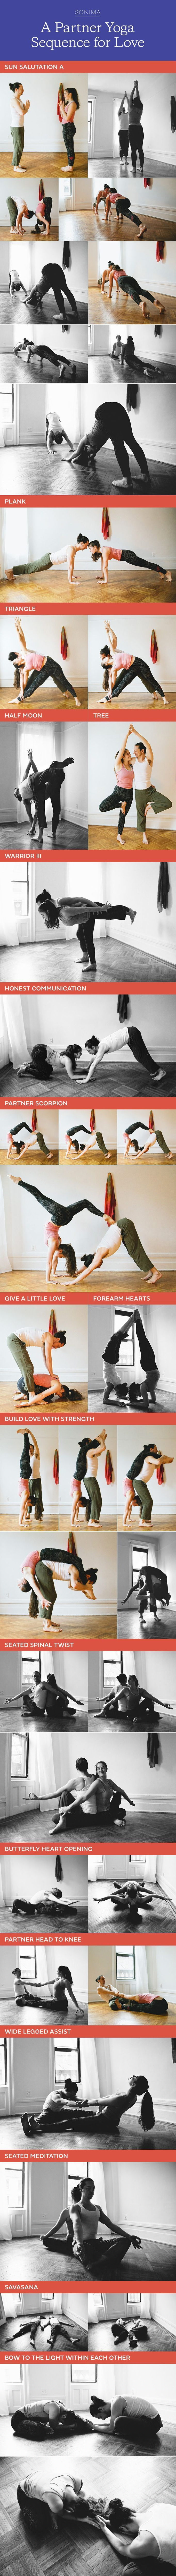 Yoga post on A Partner Yoga Sequence for Love - Sonima